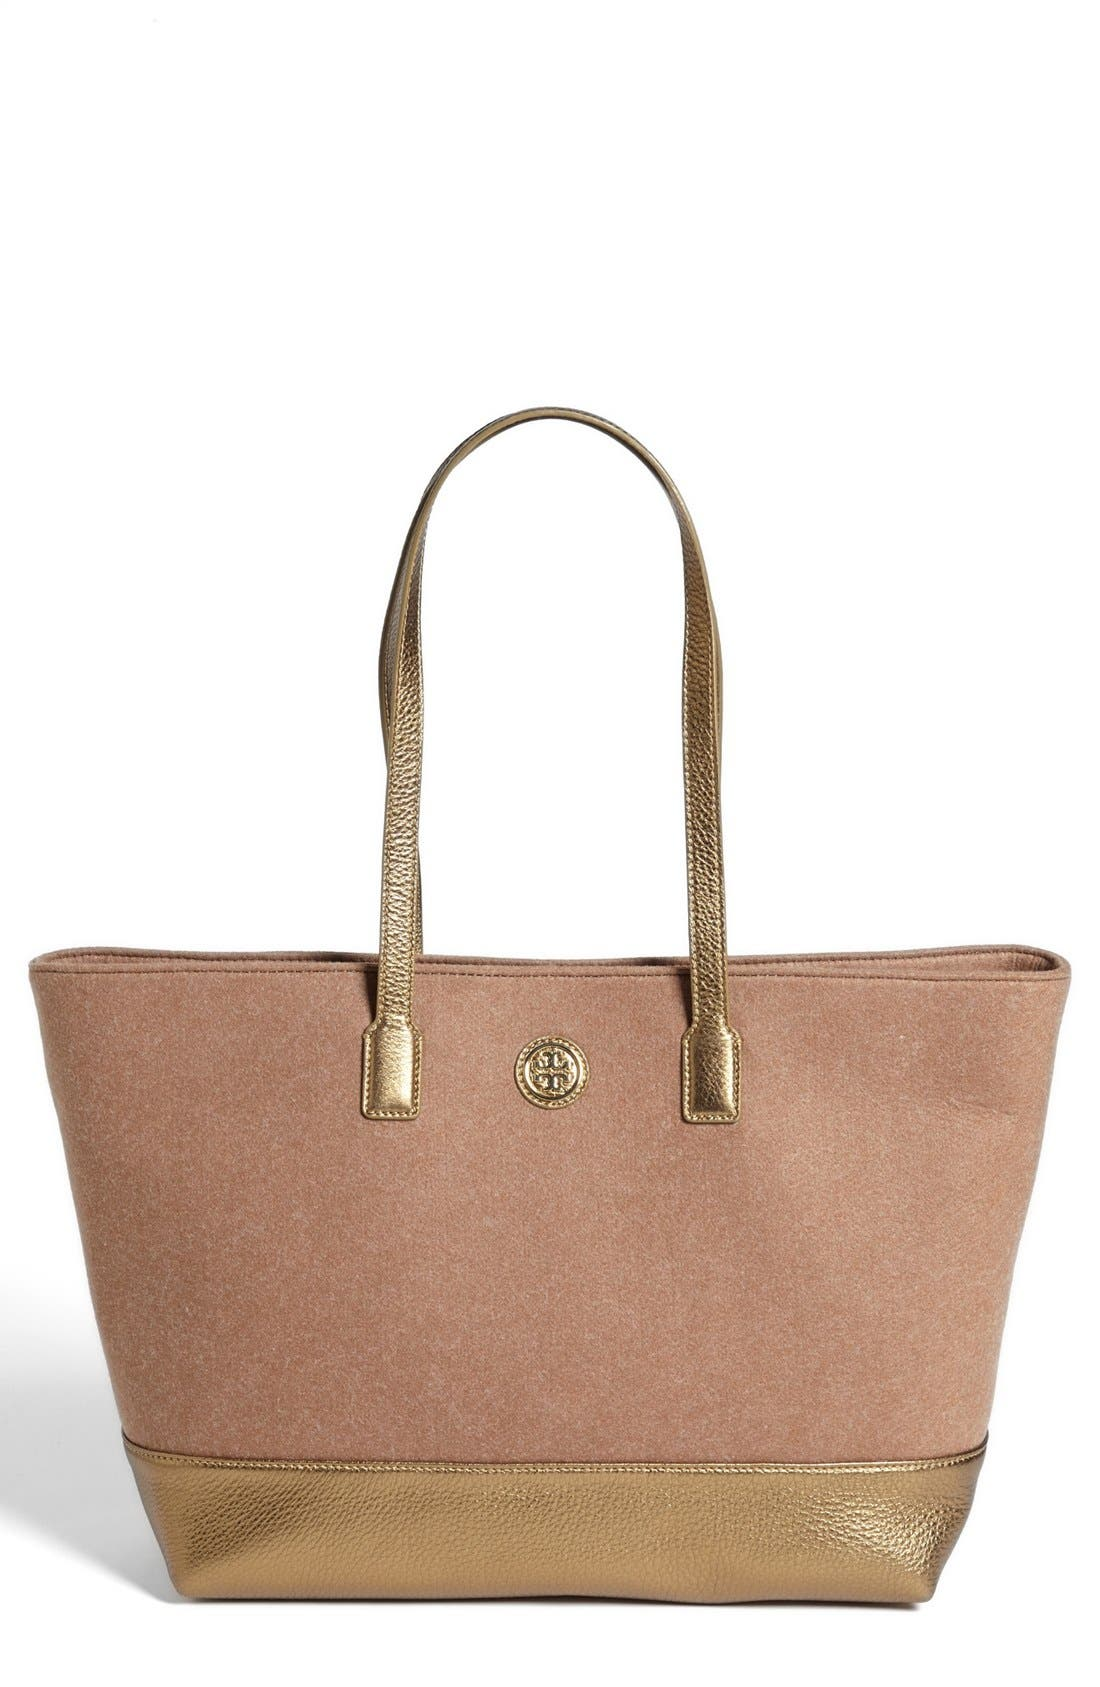 Alternate Image 1 Selected - Tory Burch 'Emmy - Small' Tote